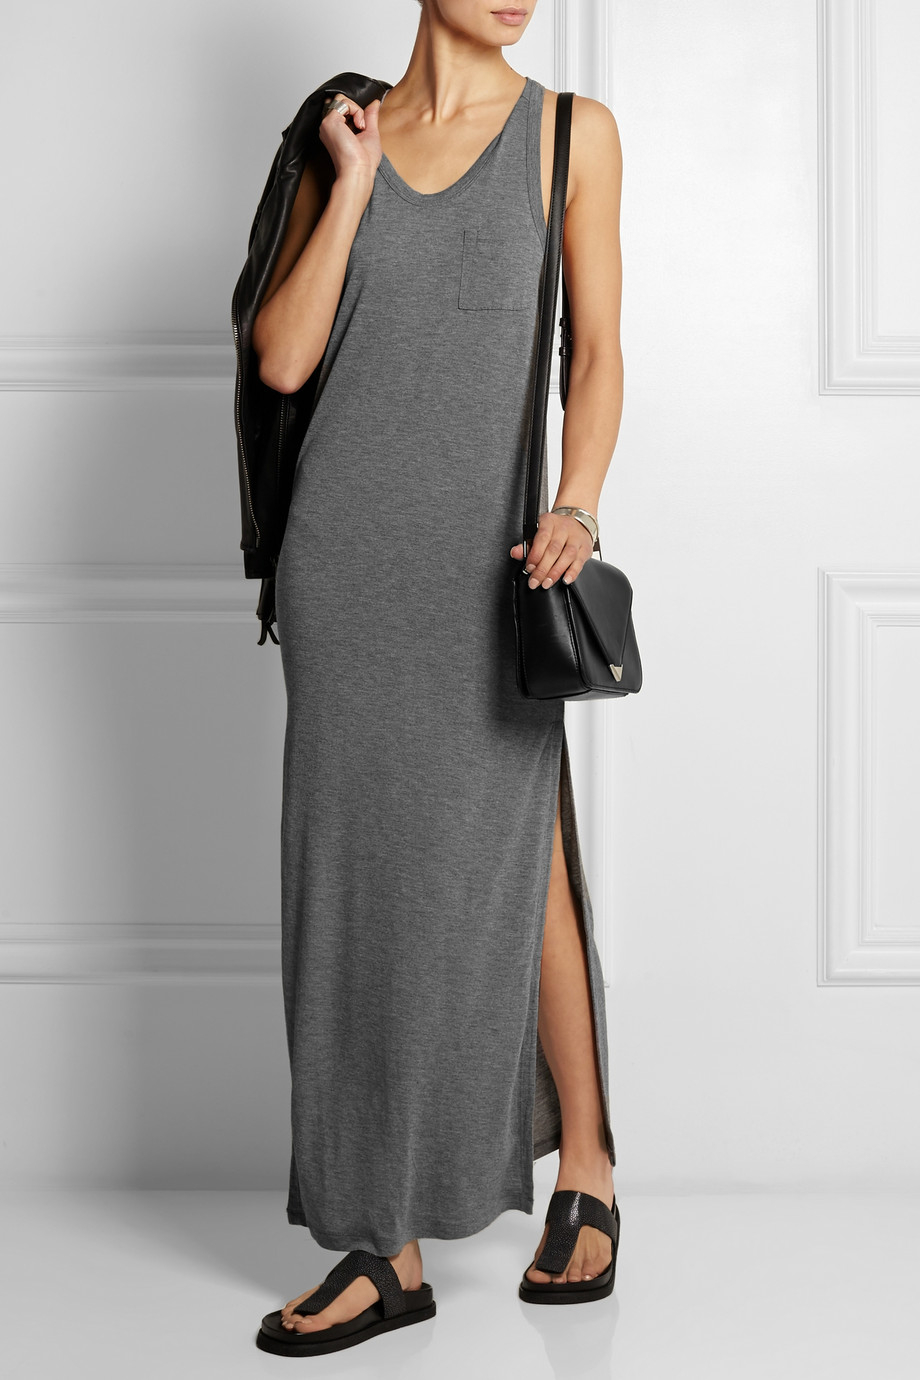 T by alexander wang Jersey Maxi Dress in Gray | Lyst